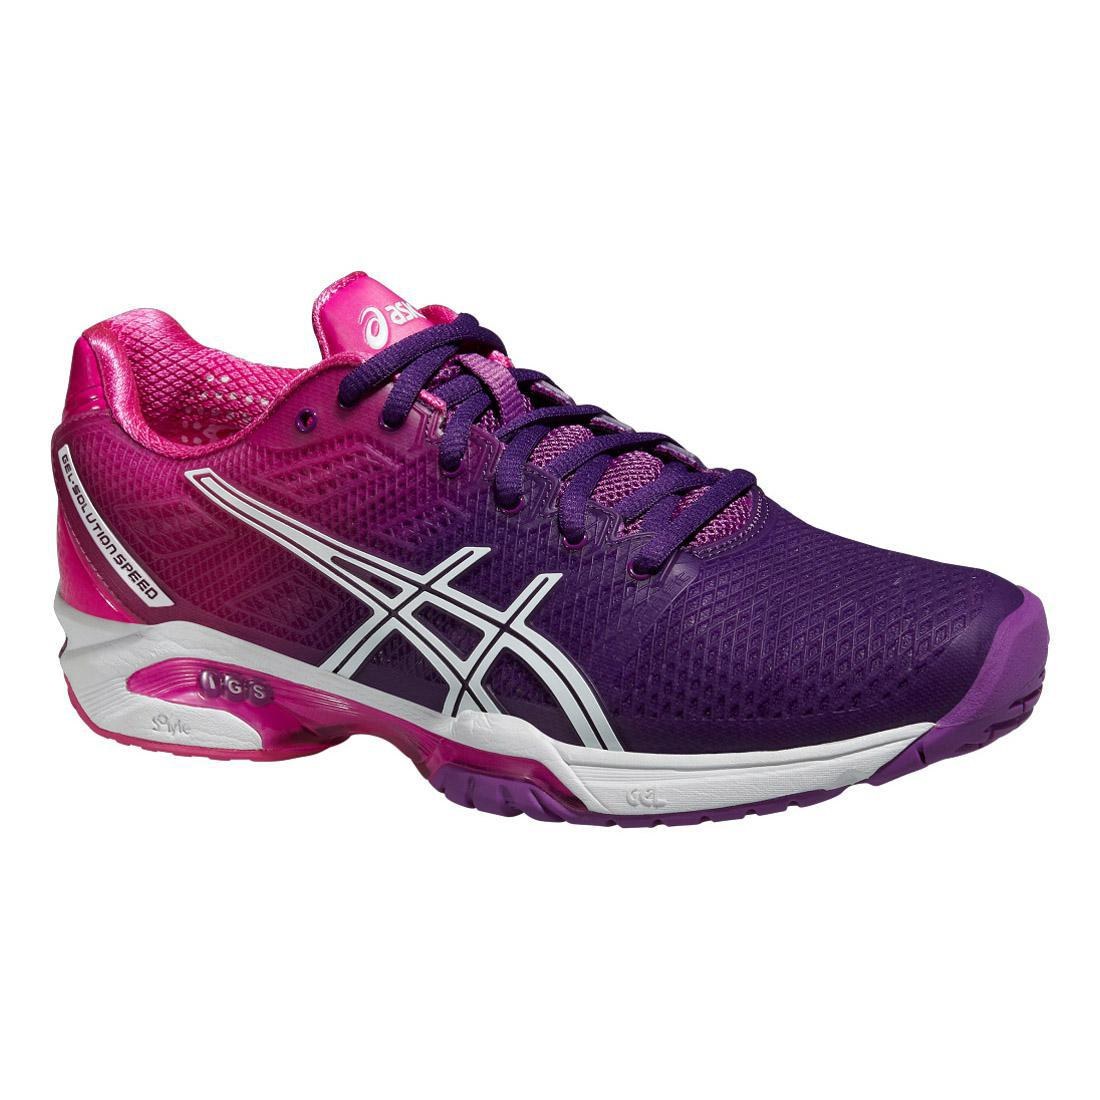 Asics Womens GEL Solution Speed 2 Tennis Shoes - Purple/Pink